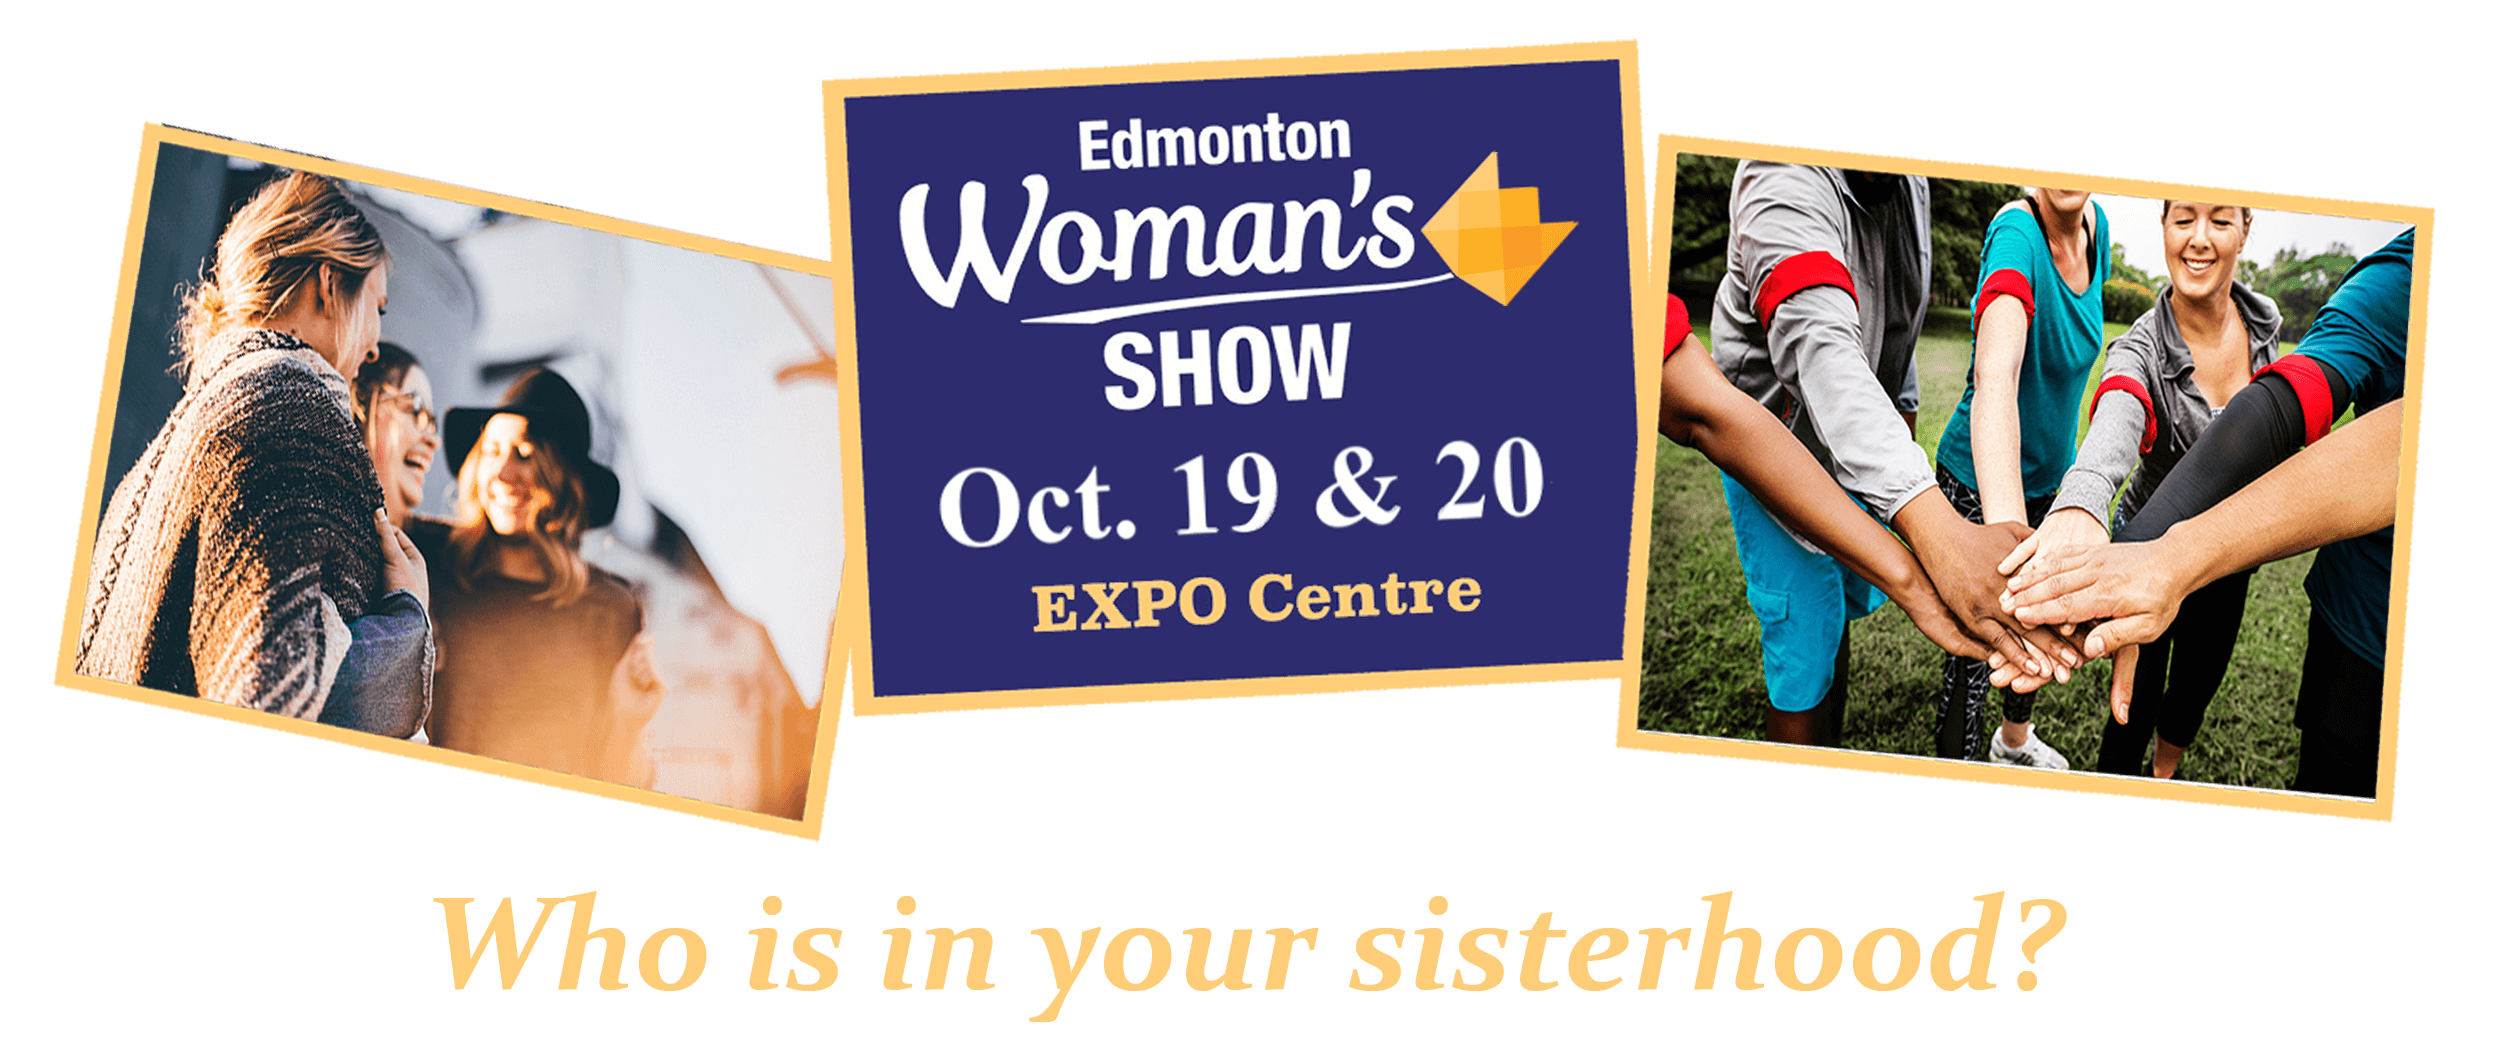 The Edmonton Woman's Show... Who is in your sisterhood?